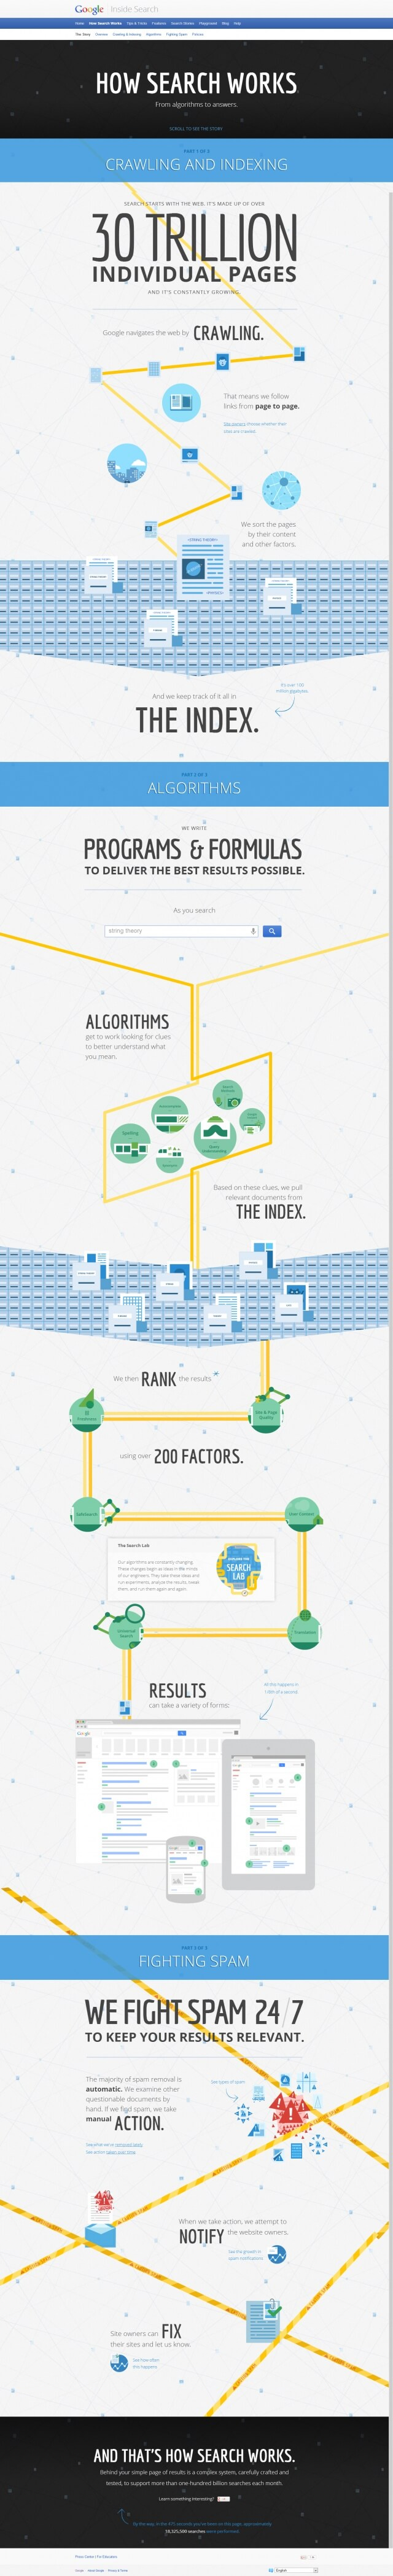 How Search Works - infographic